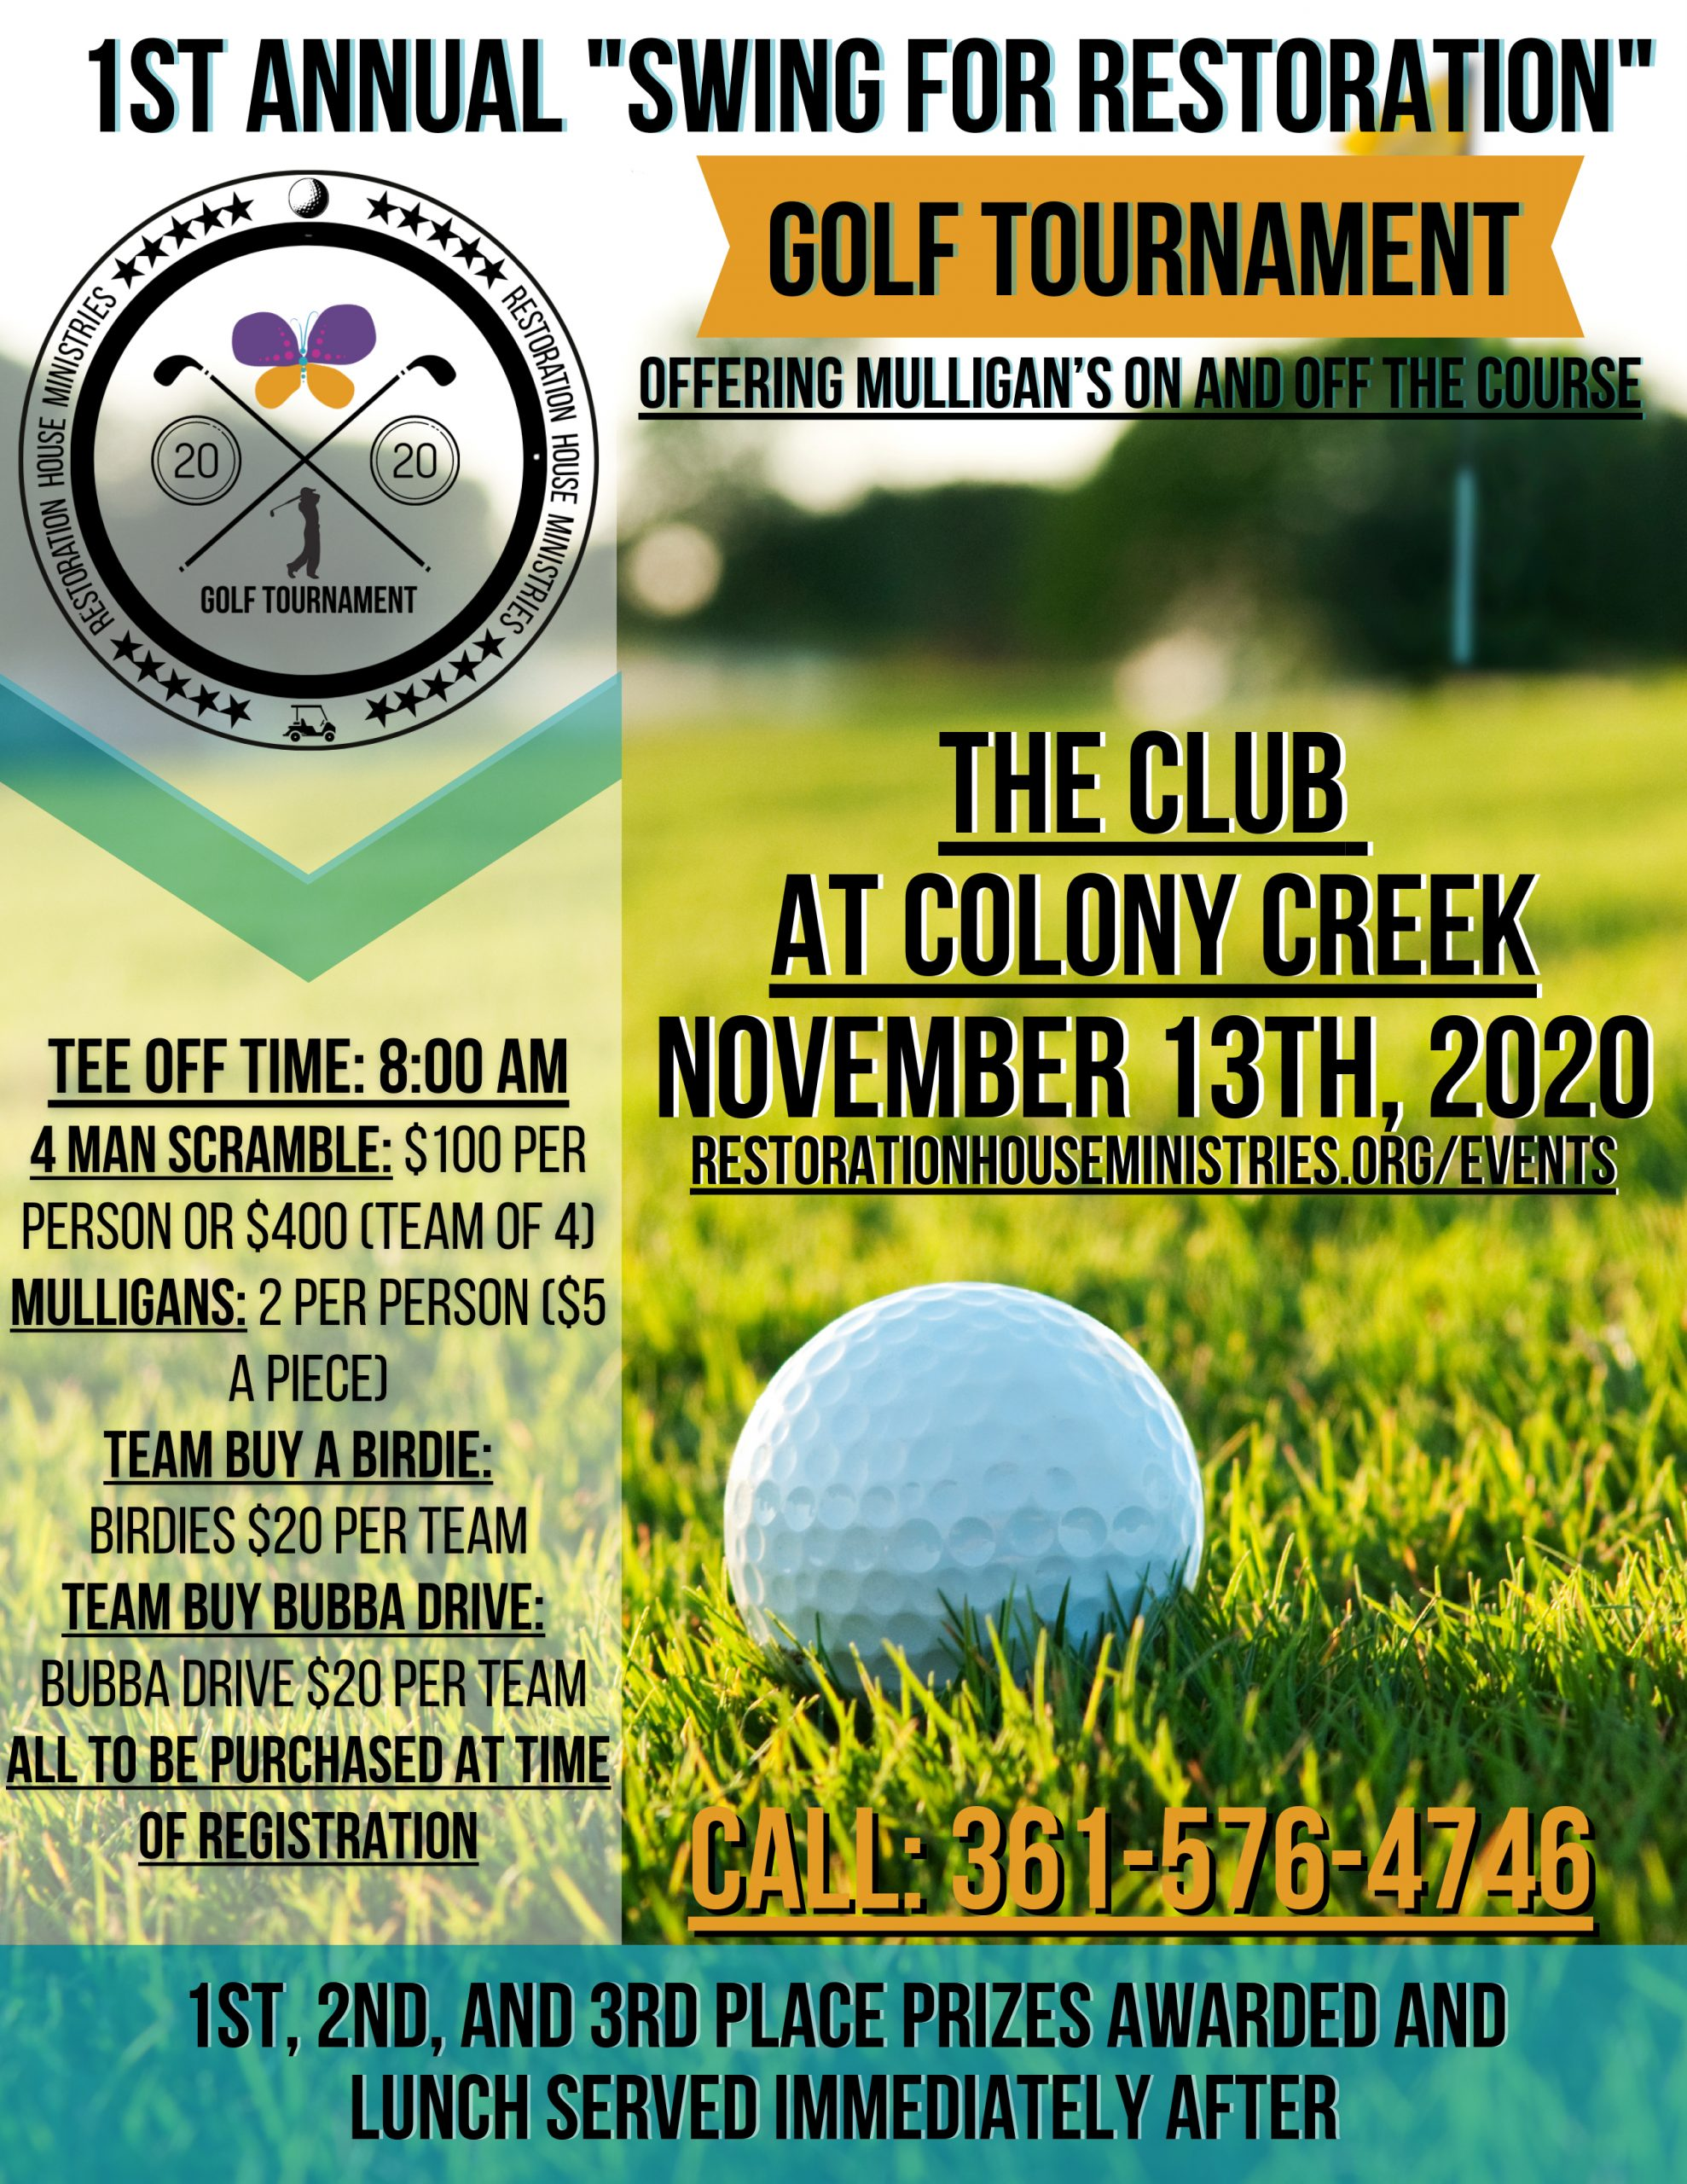 1st Annual Swing for Restoration Golf Tournament